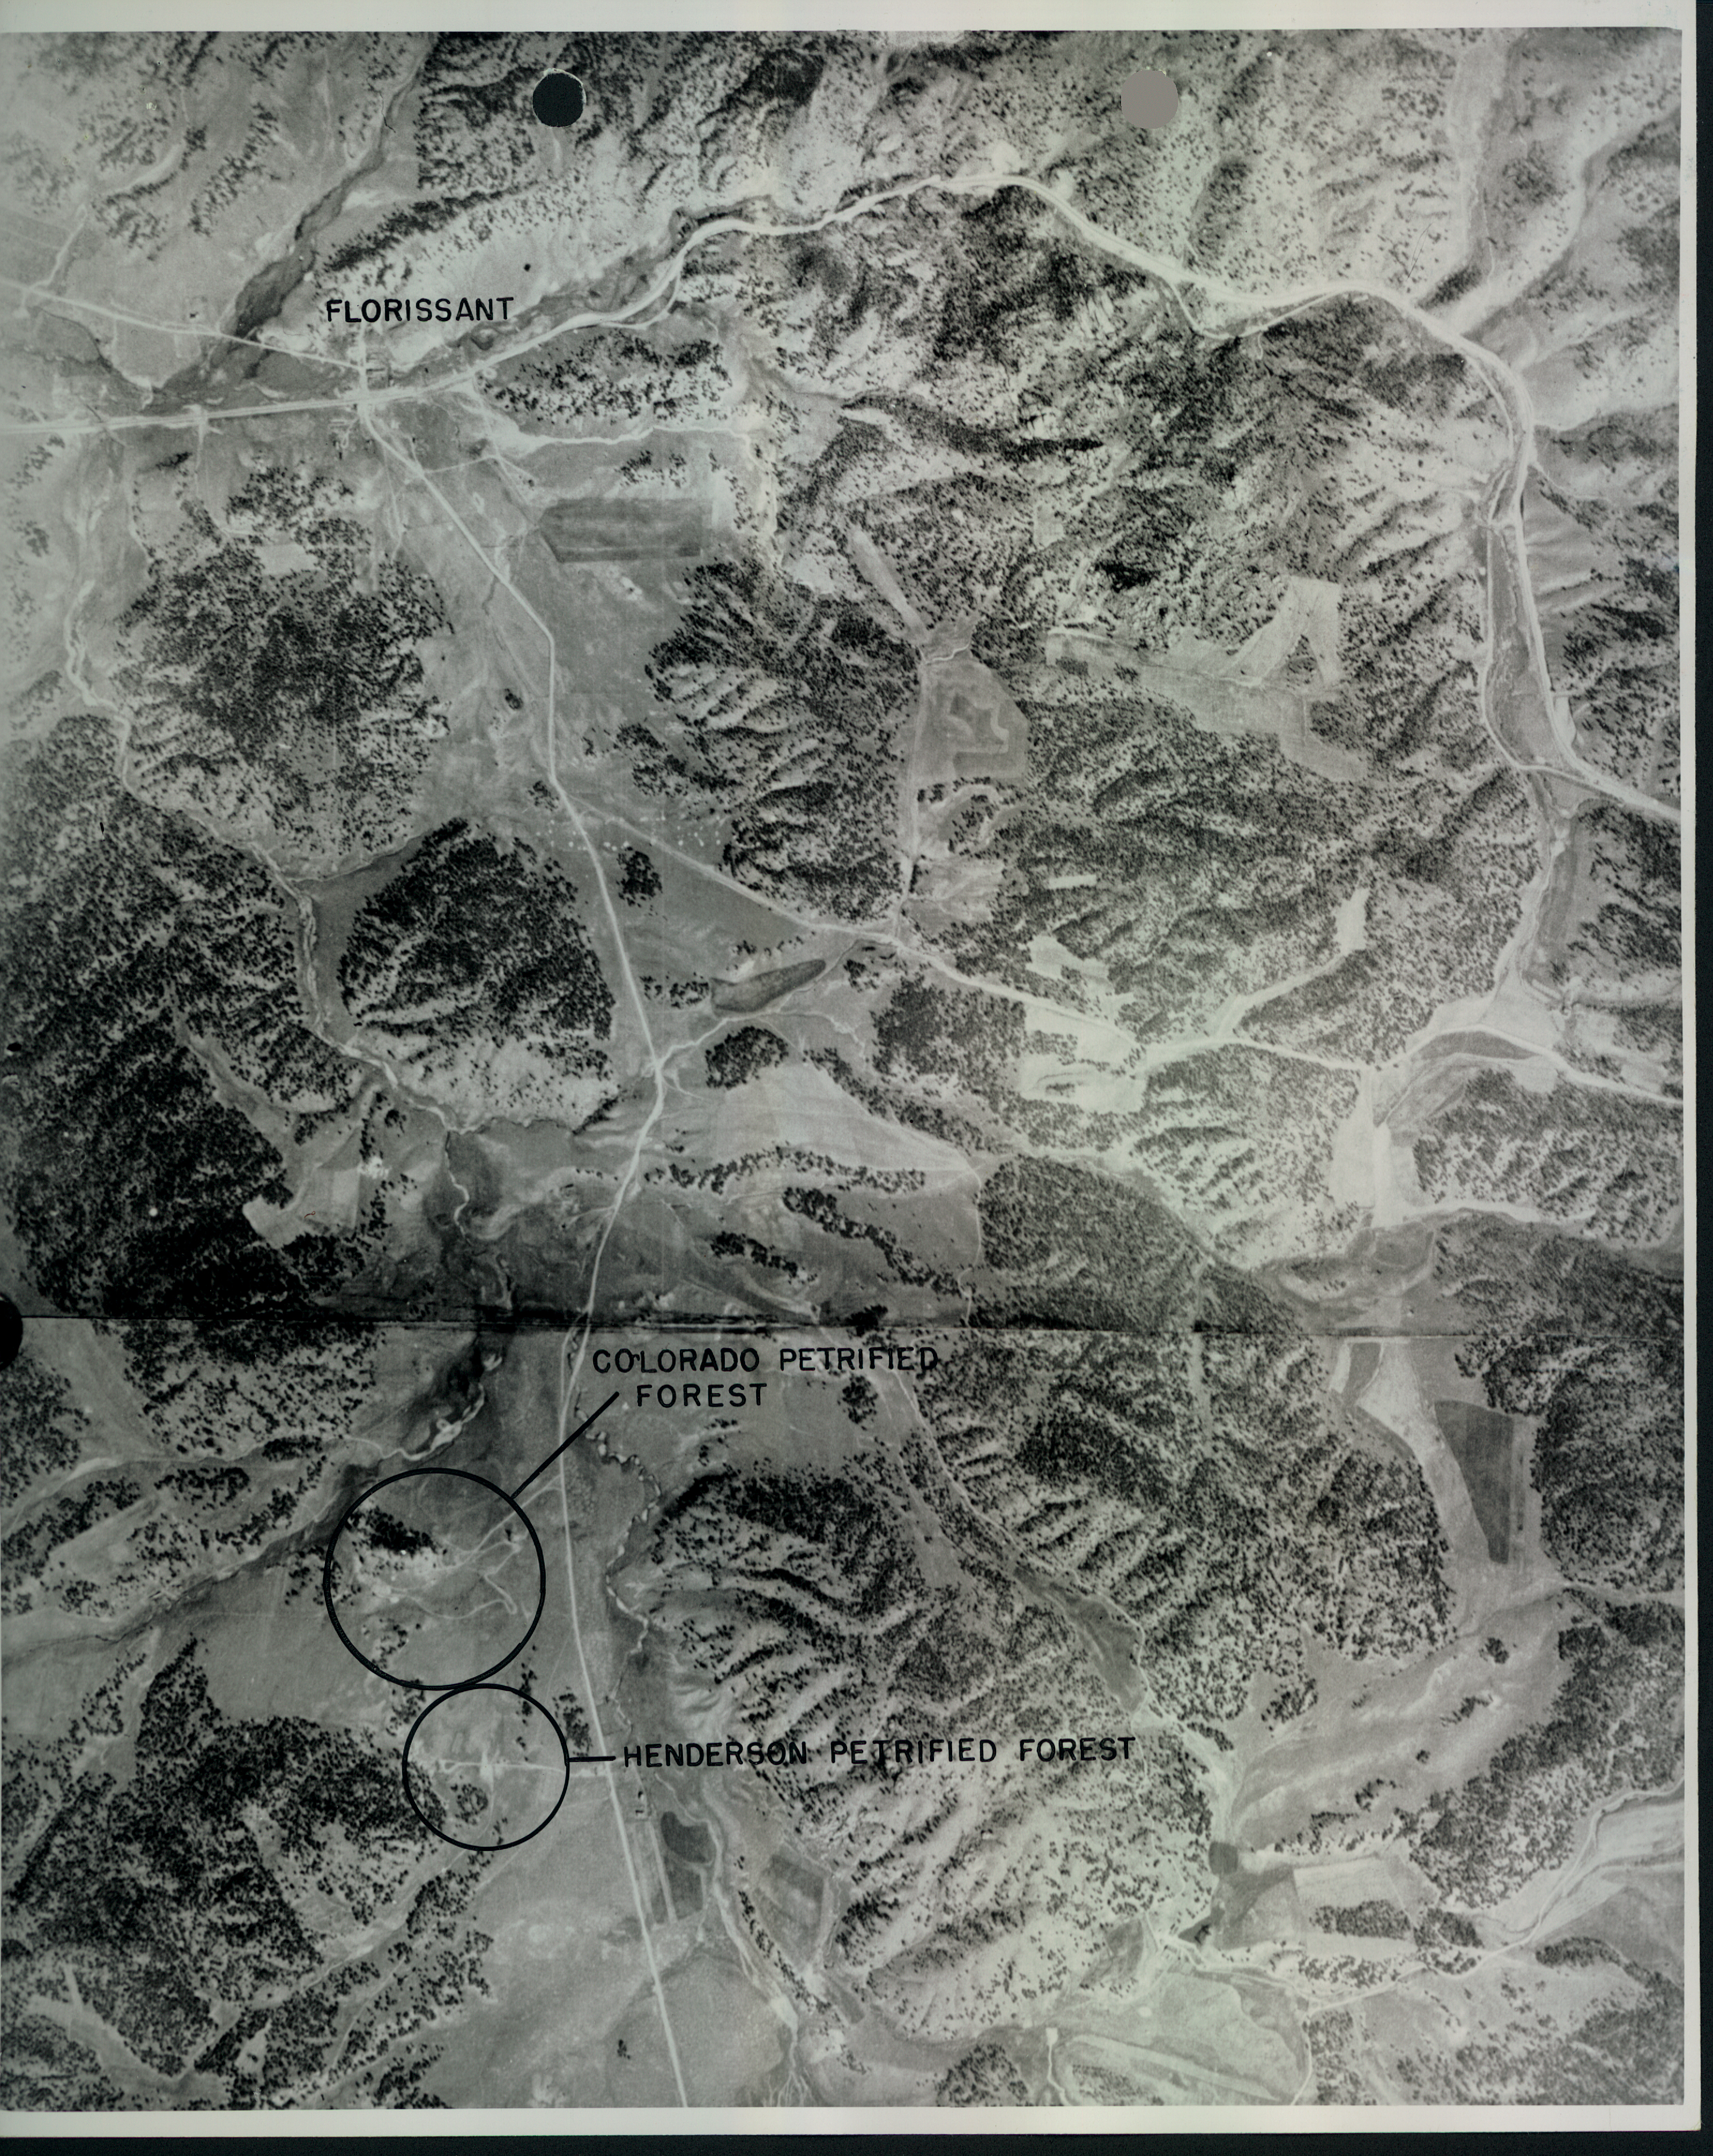 Aerial photograph of the proposed park area with both petrified forest attractions marked.